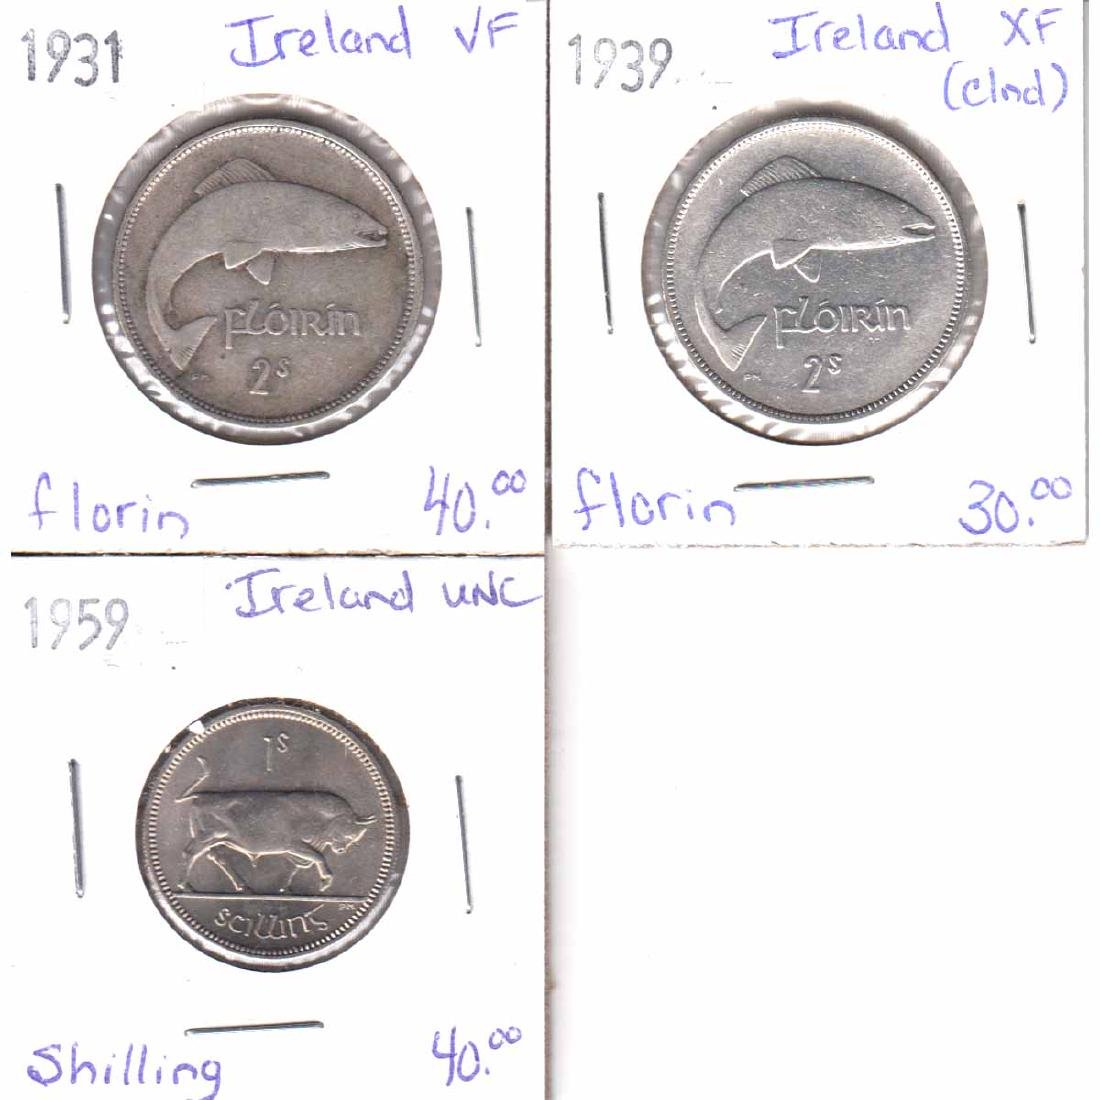 Lot of 3x Irish Coinage Dated 1931-1959 in VF to UNC.